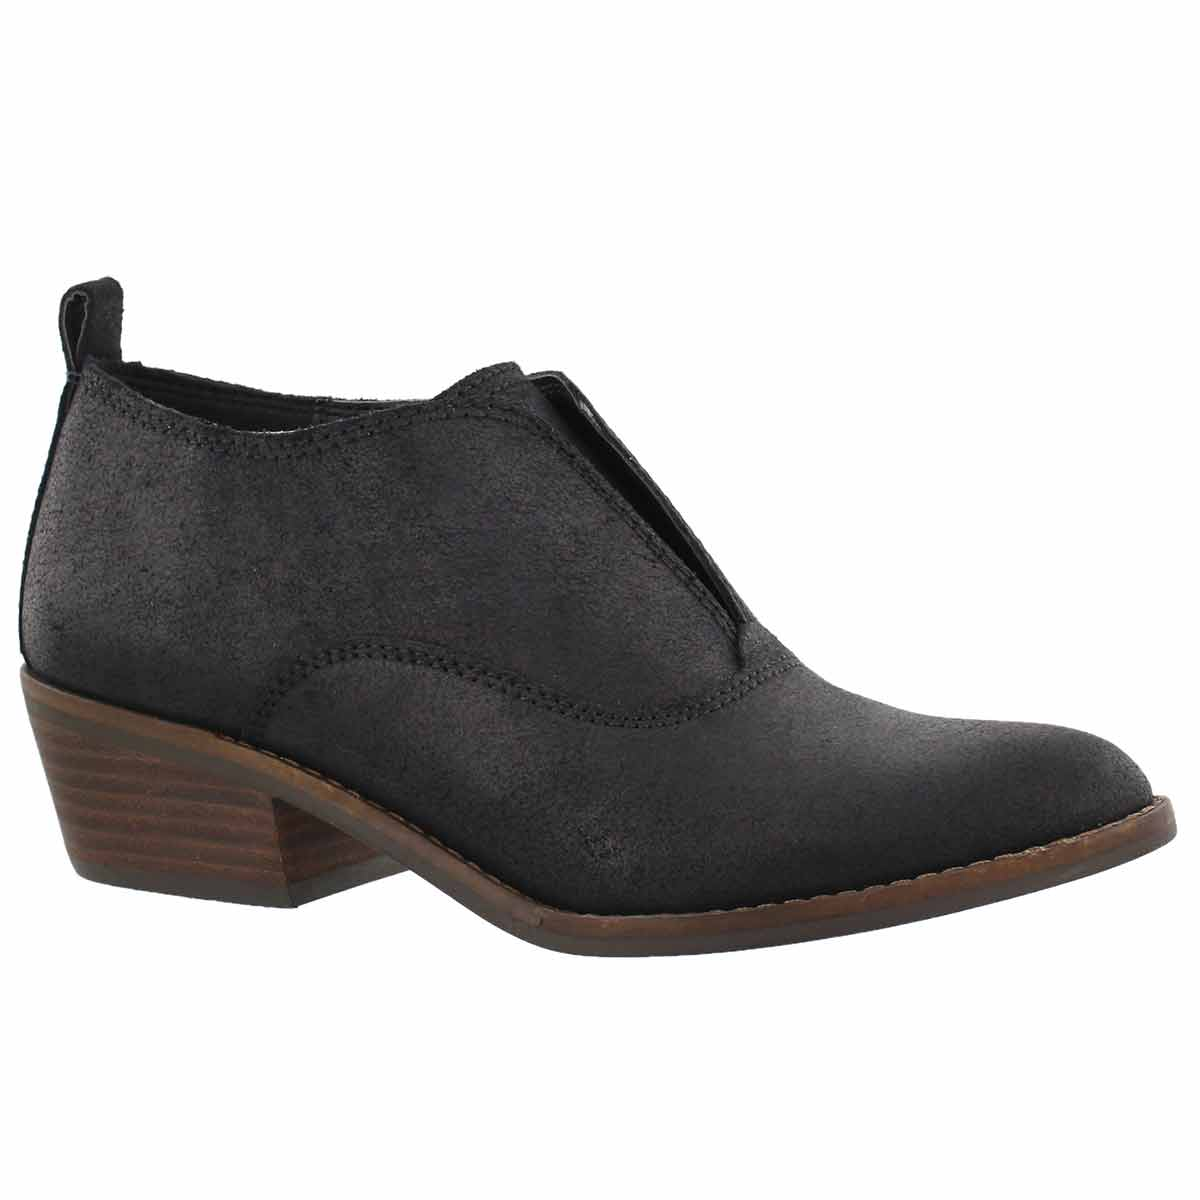 Women's FIMBERLY black low casual boots